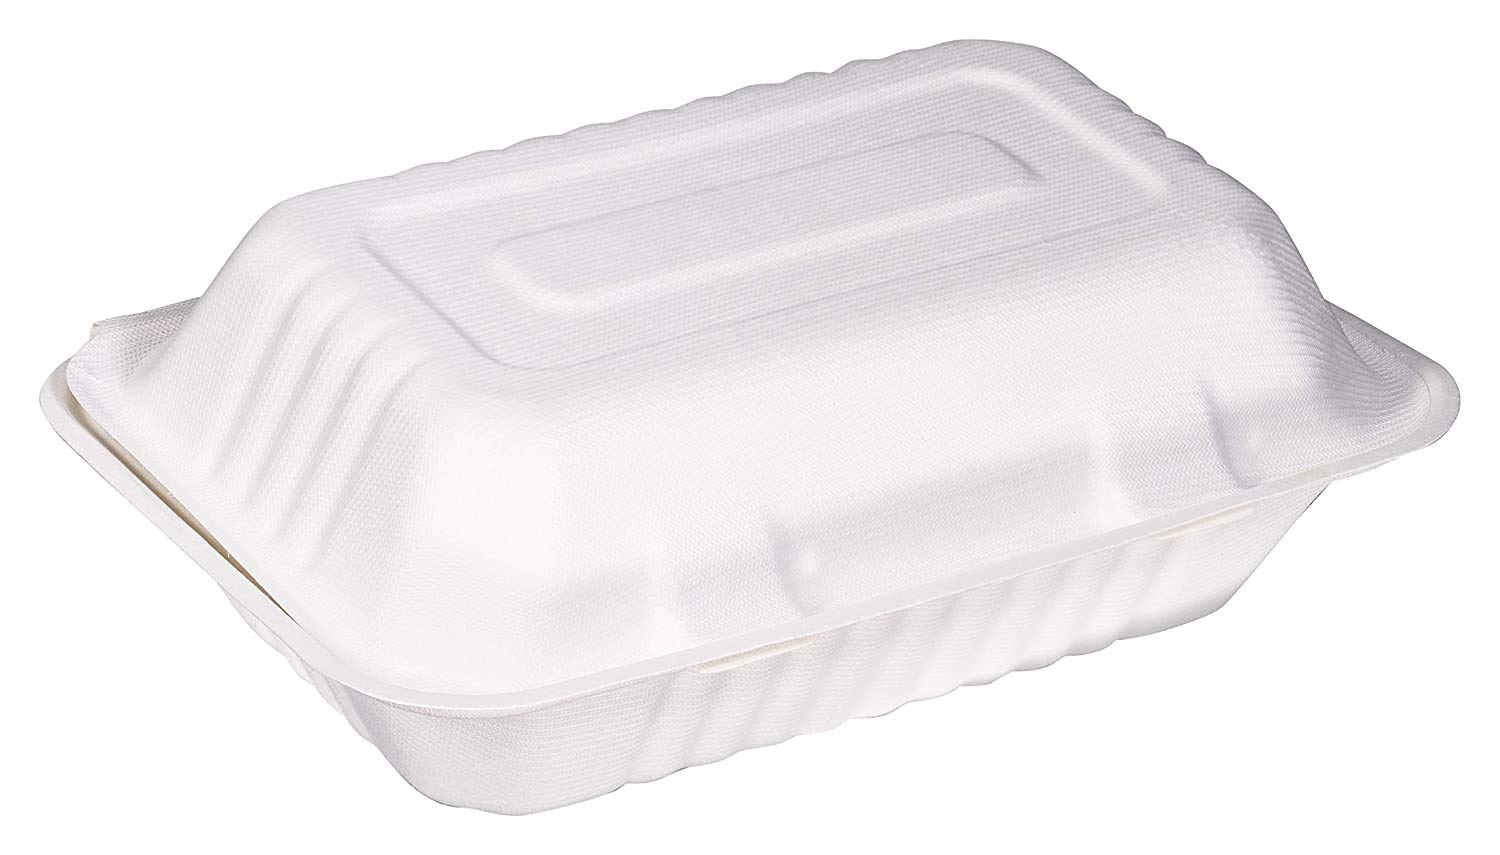 1000 Count - Bulk Biodegradable 9x9 Take Out Food Containers with Clamshell Hinged Lid - Eco Friendly Sugarcane Bagasse 100% Compostable, Recyclable, Togo, Restaurant Carry Out, Party Take Home Boxes